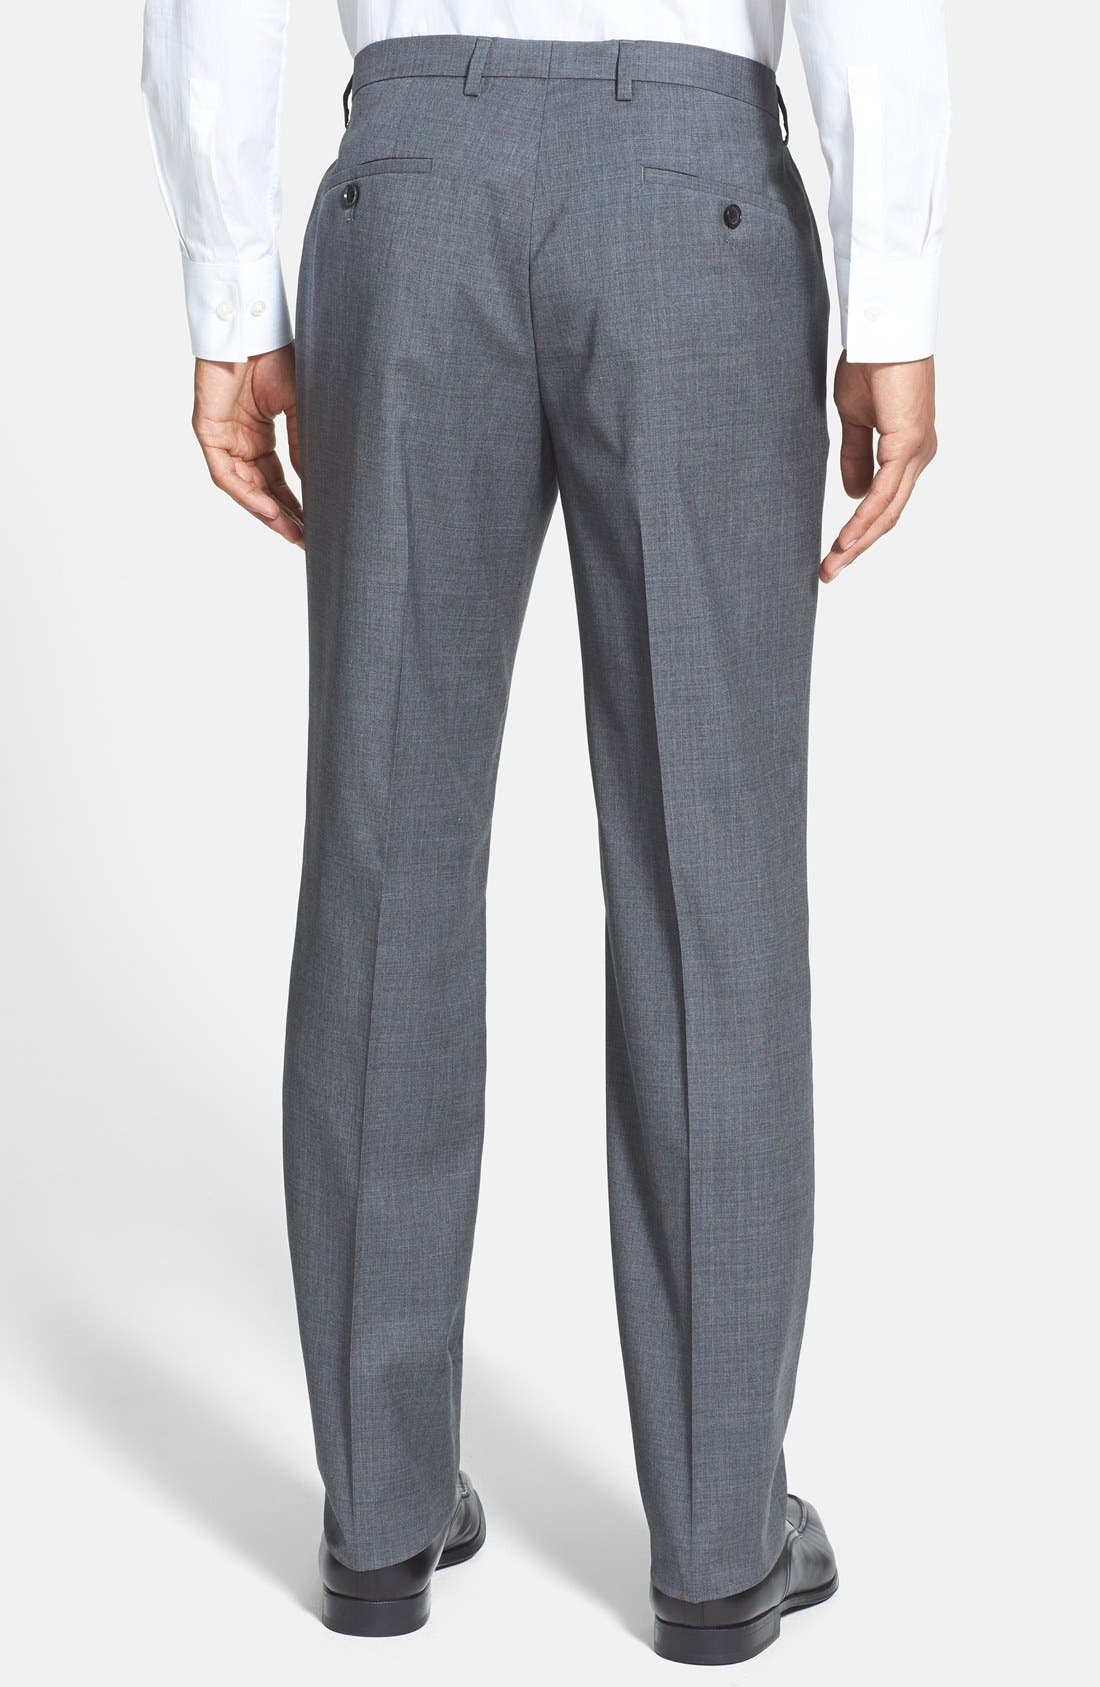 ZZDNUHUGO BOSS,                             BOSS 'Sharp' Slim Fit Flat Front Wool Trousers,                             Alternate thumbnail 2, color,                             060